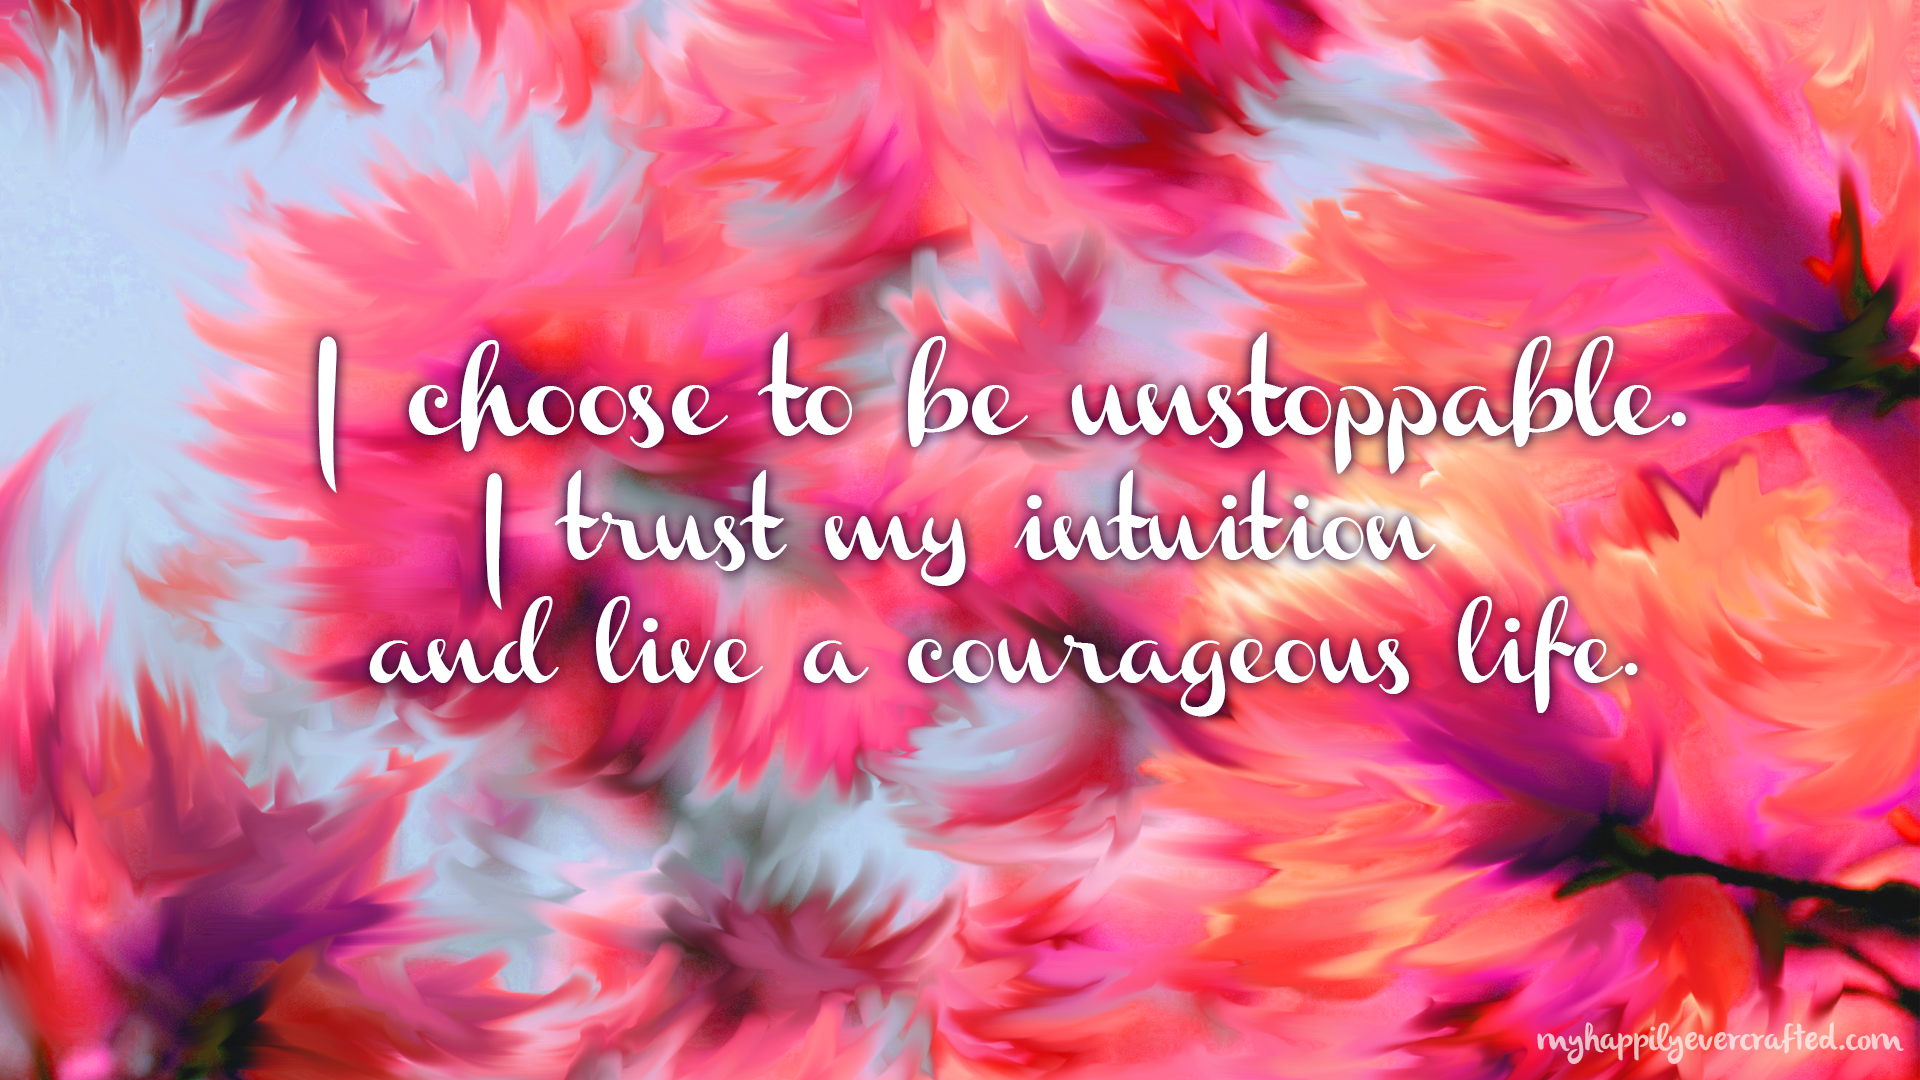 Wallpaper I Choose To Be Unstoppable My Happily Ever Crafted